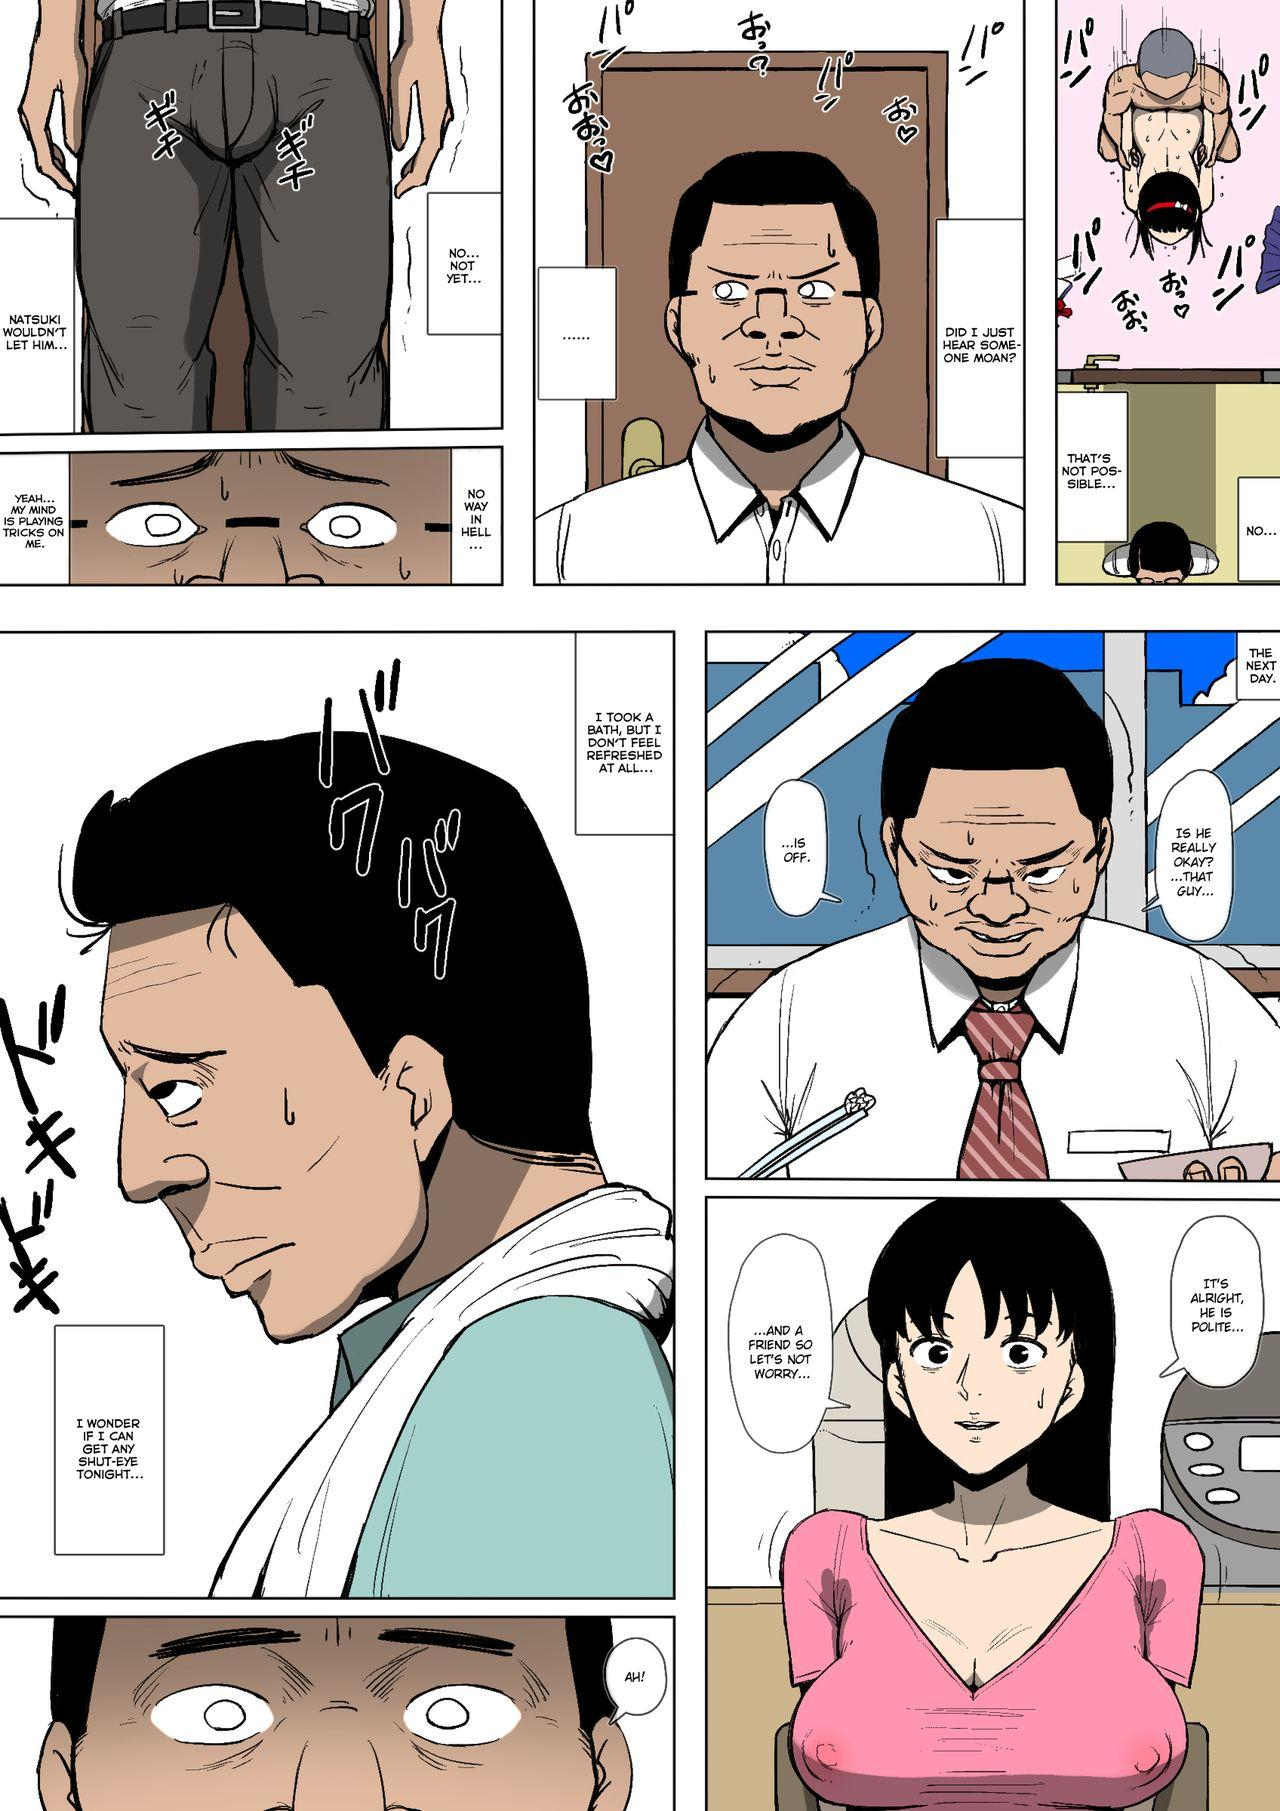 Musume ga Furyou ni Otosareteita   My Daughter was Corrupted by a Delinquent 19